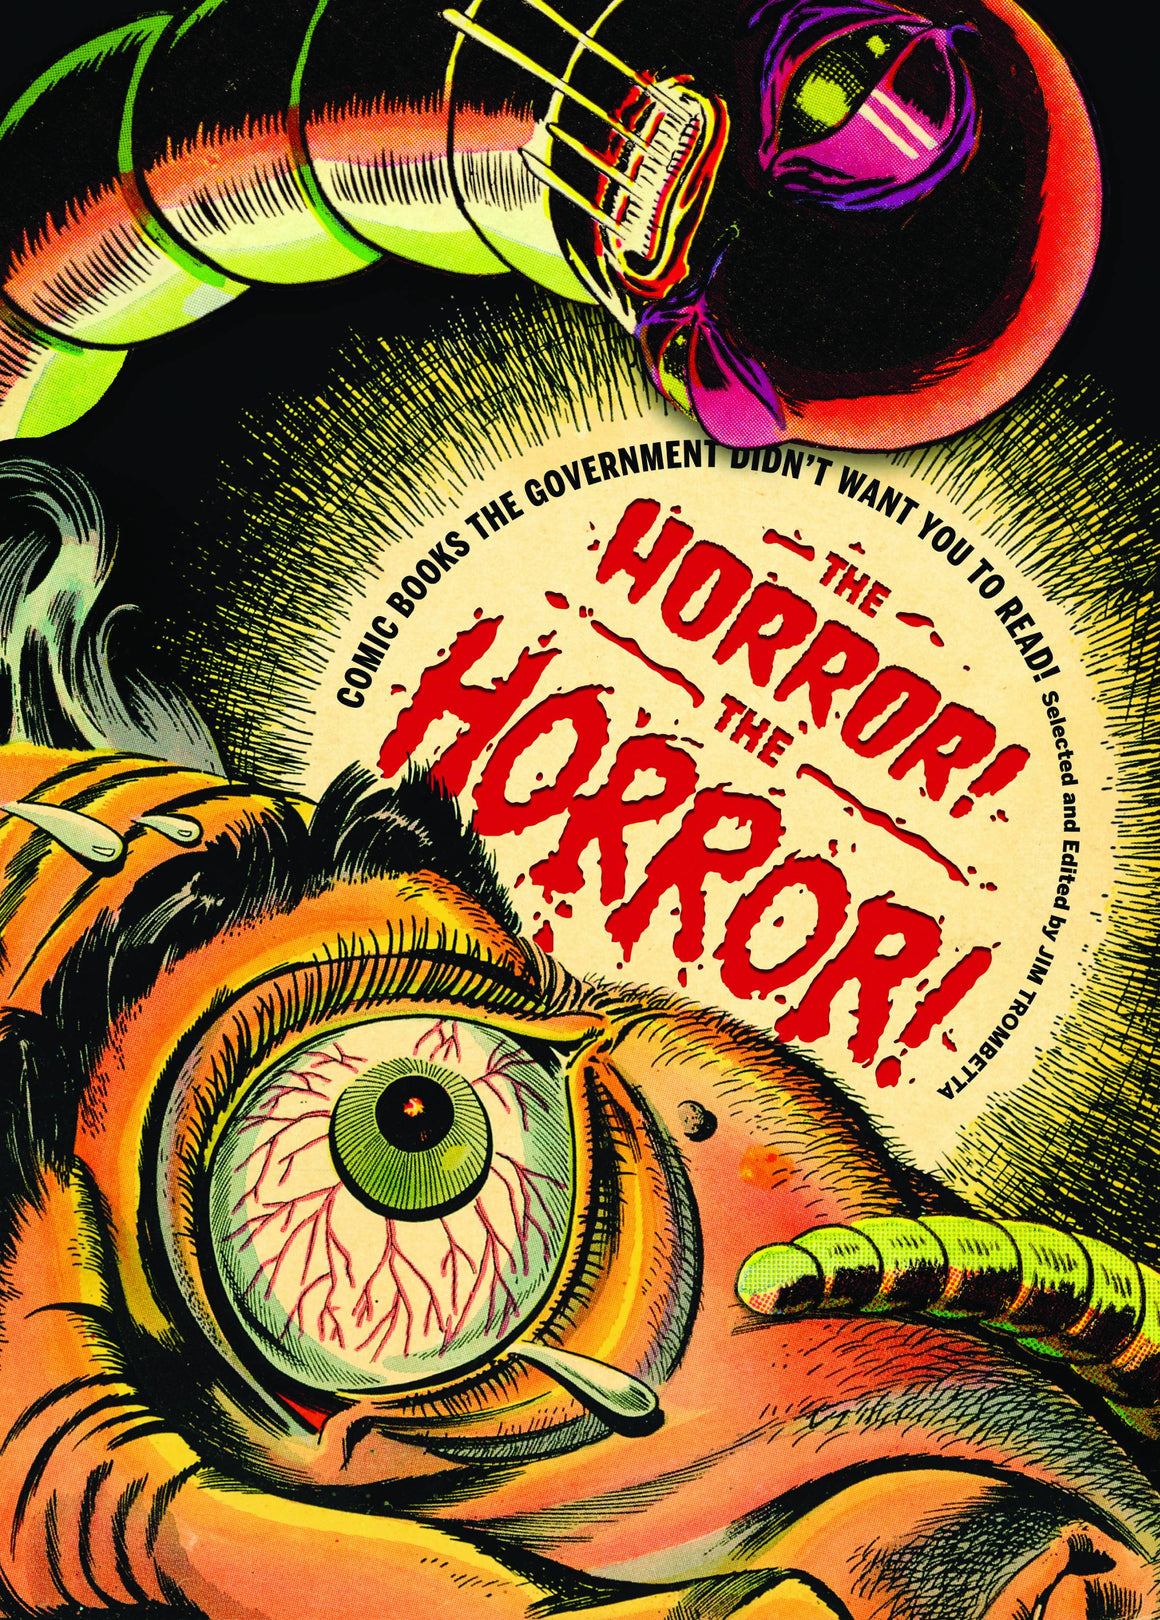 THE HORROR THE HORROR COMICS GOVERNMENT DIDNT WANT YOU READ